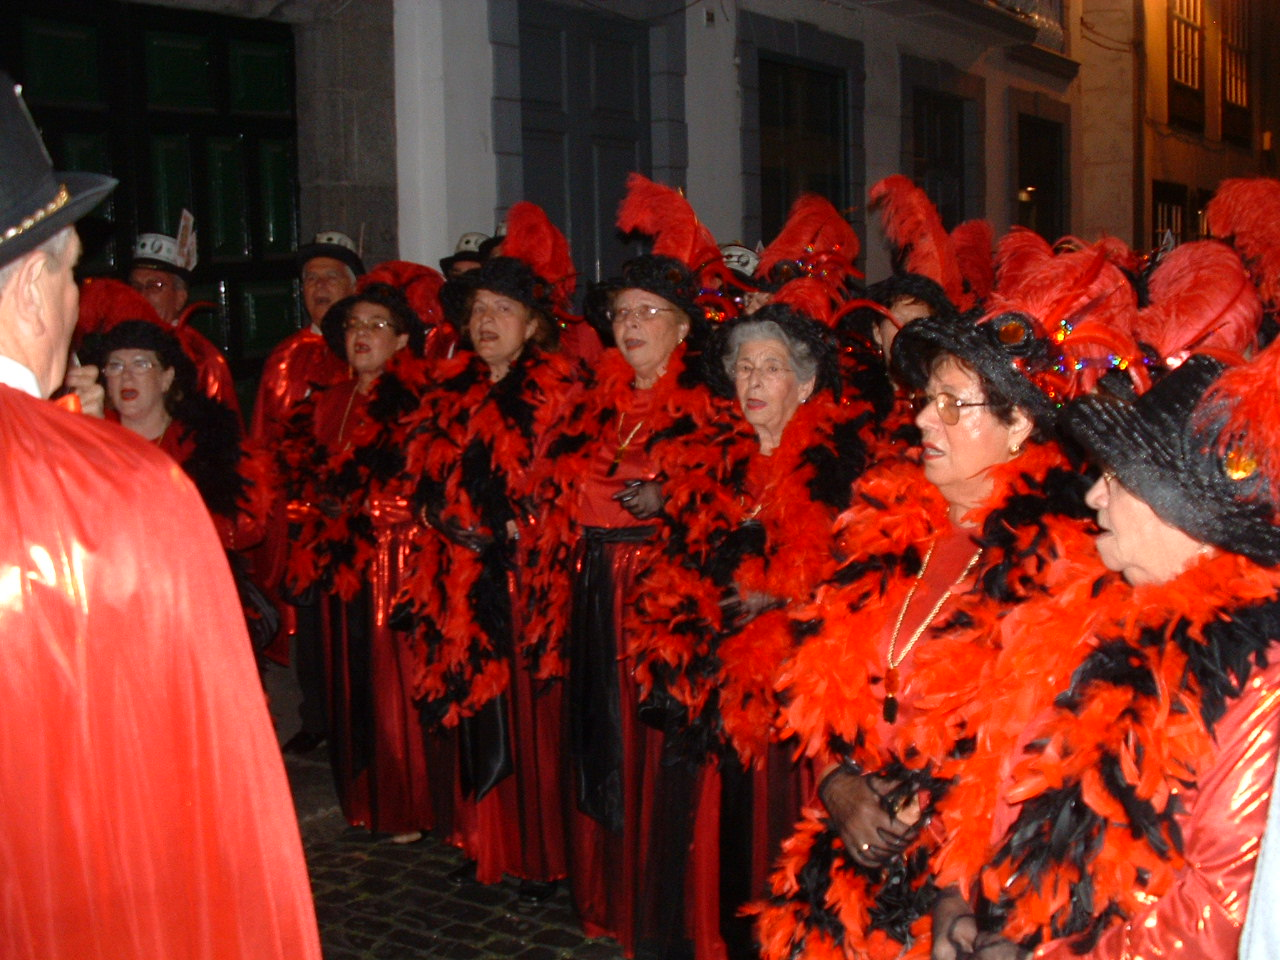 A choir of old ladies, Ambassador's Parade, Santa Cruz de La Palma